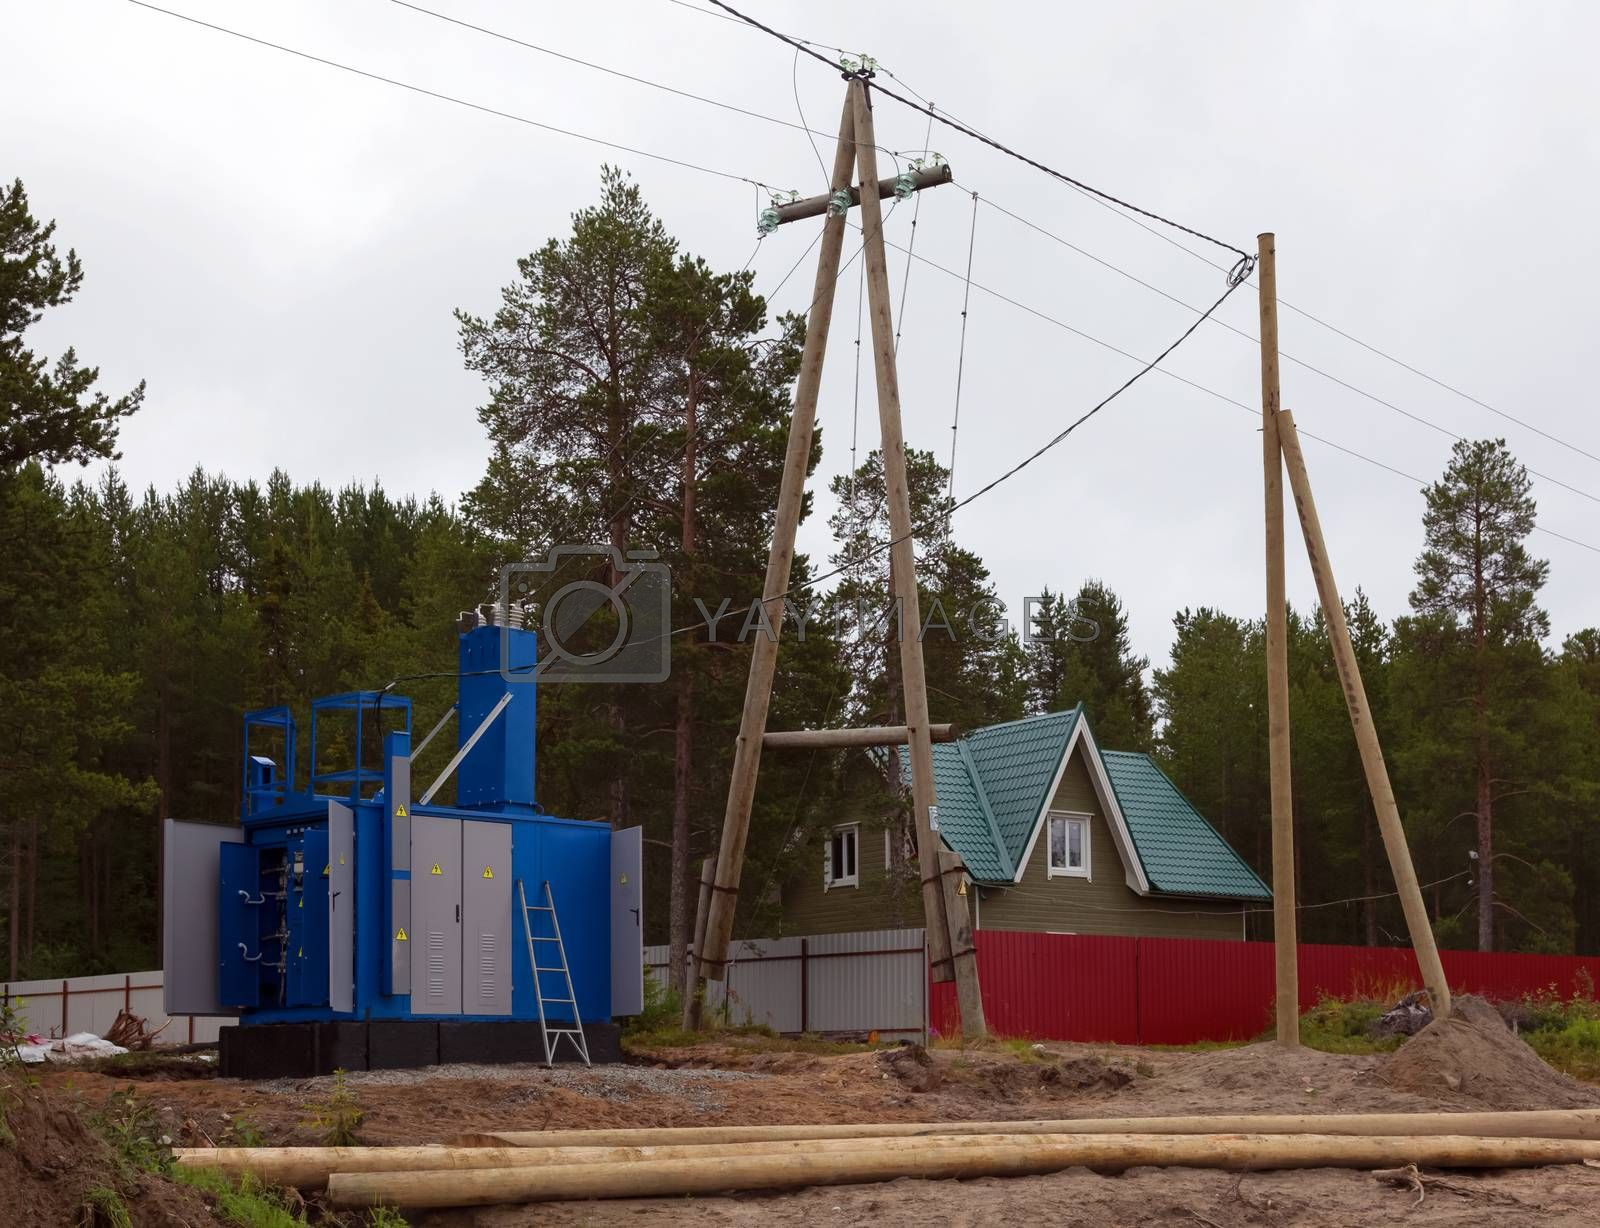 Construction of transformer substation and transmission line to supply electricity to homes